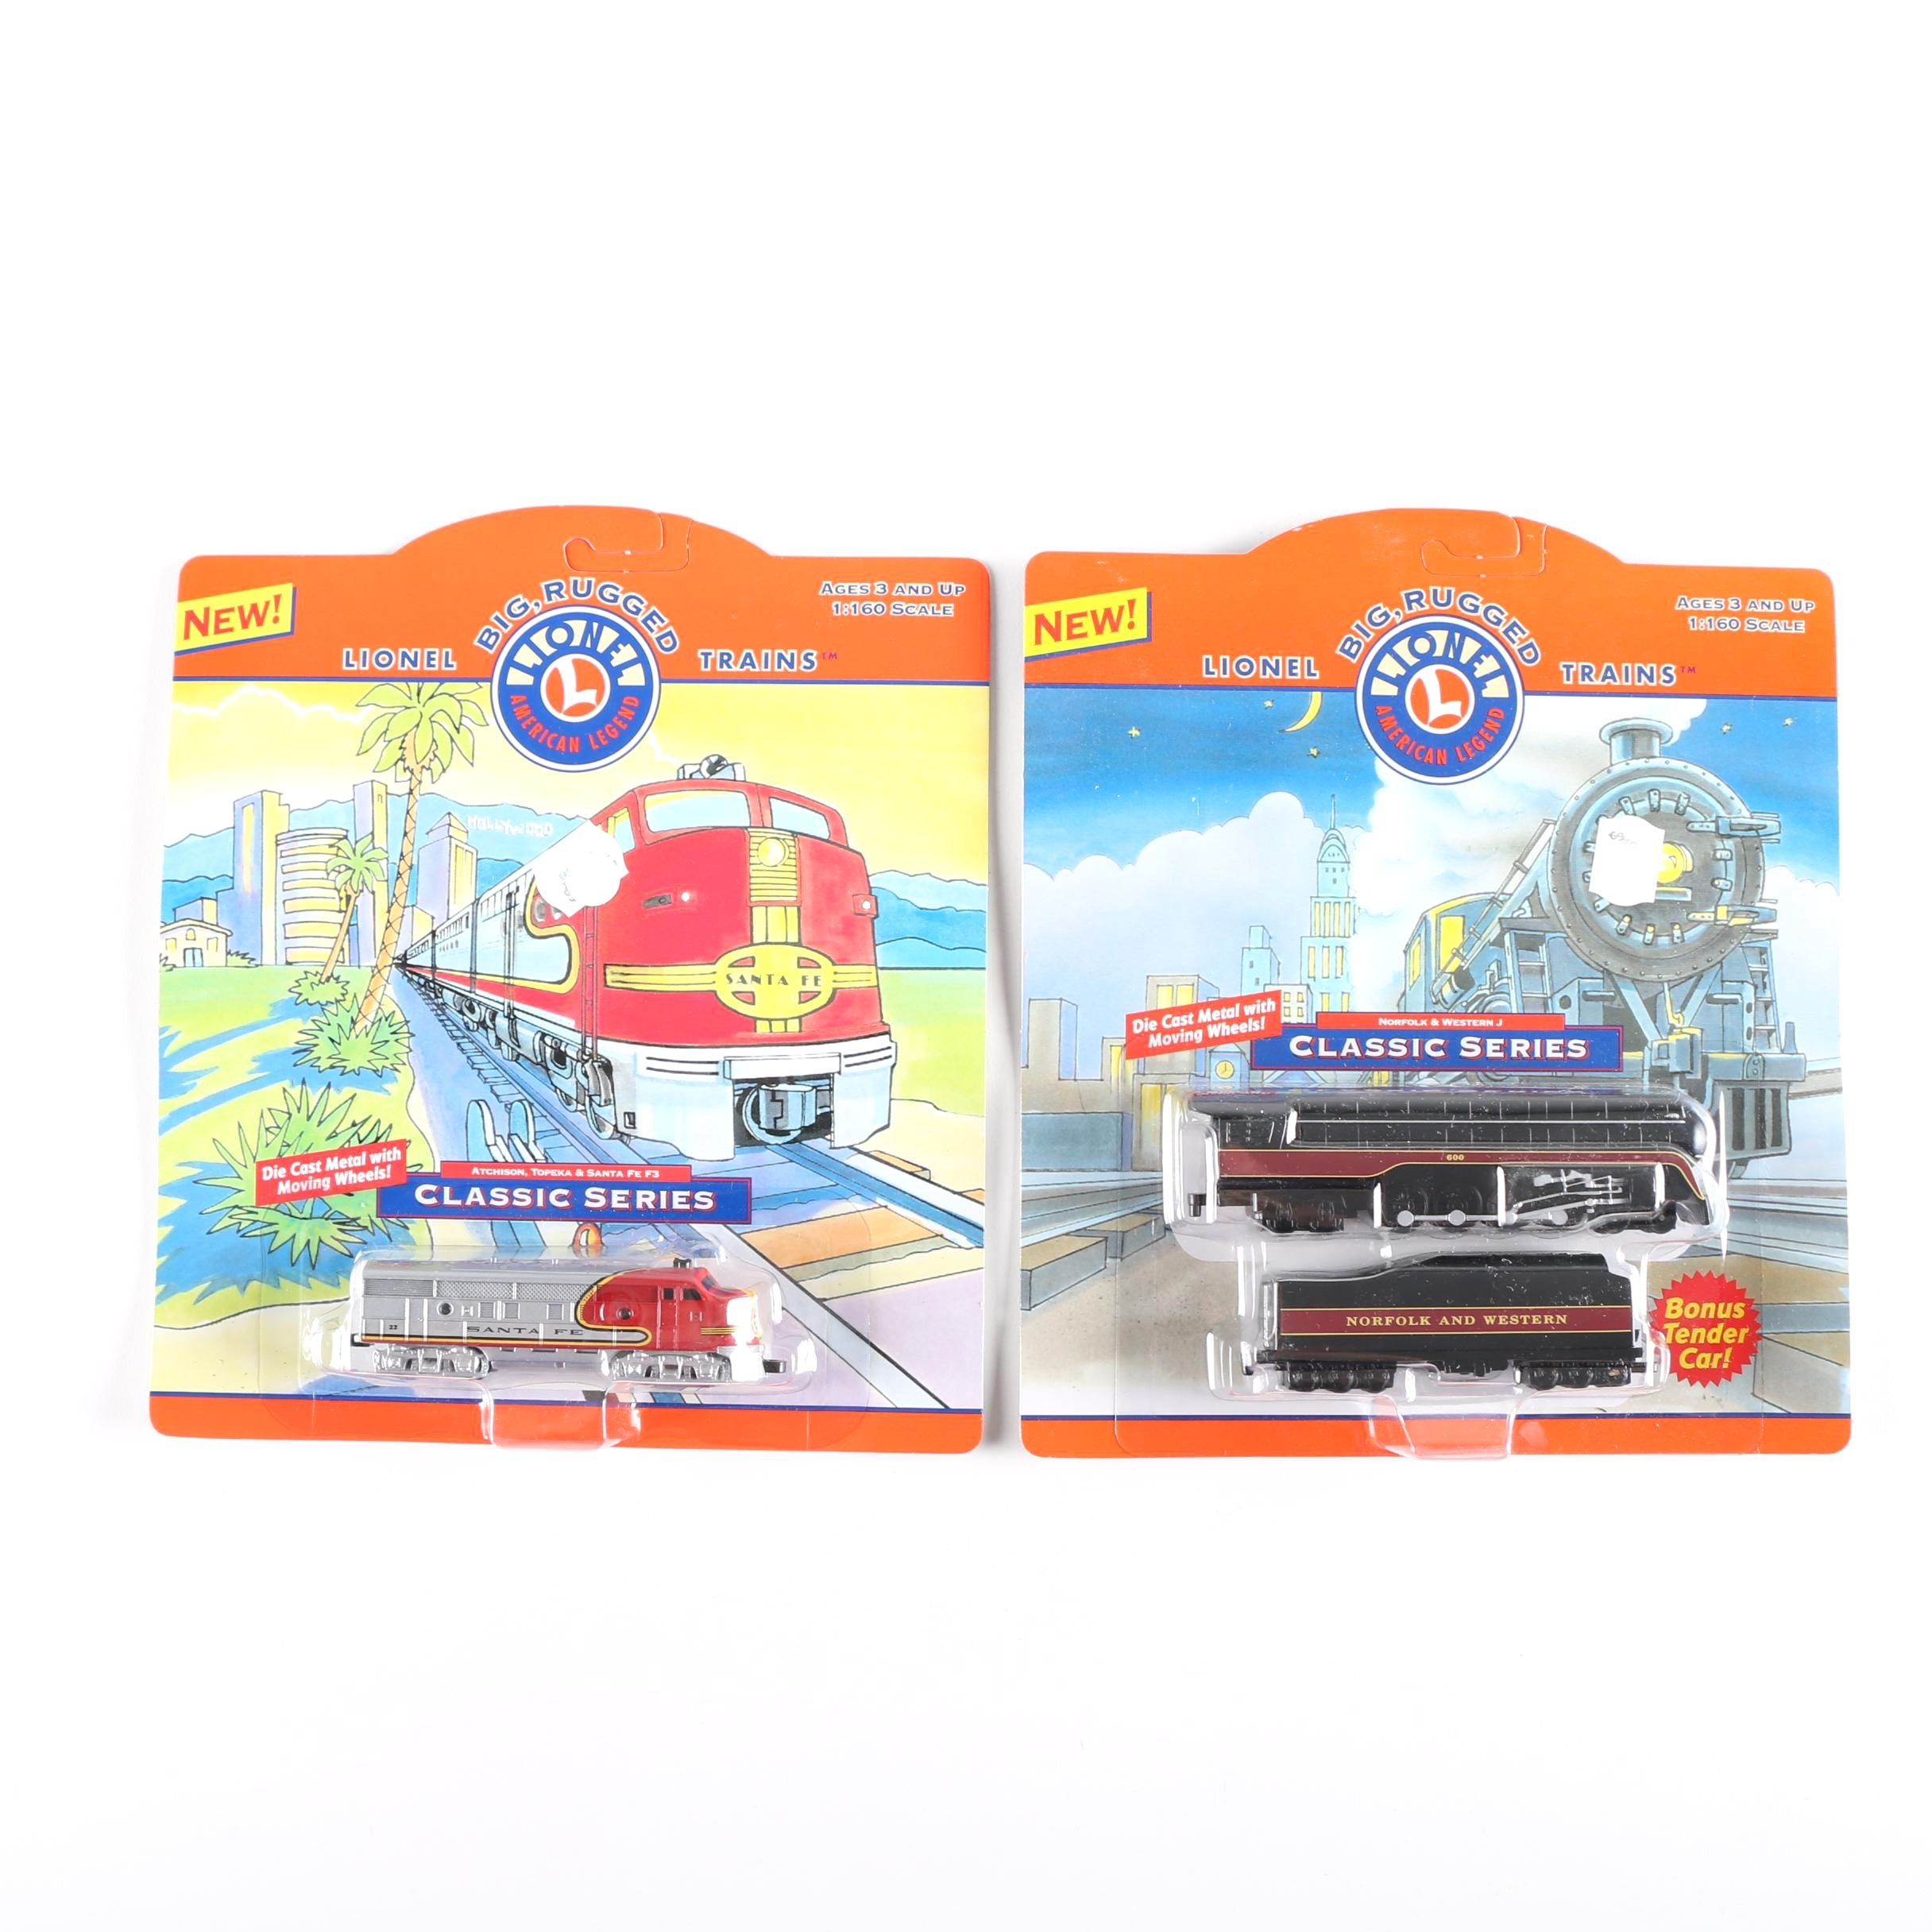 Pair of Die-Cast Lionel Trains